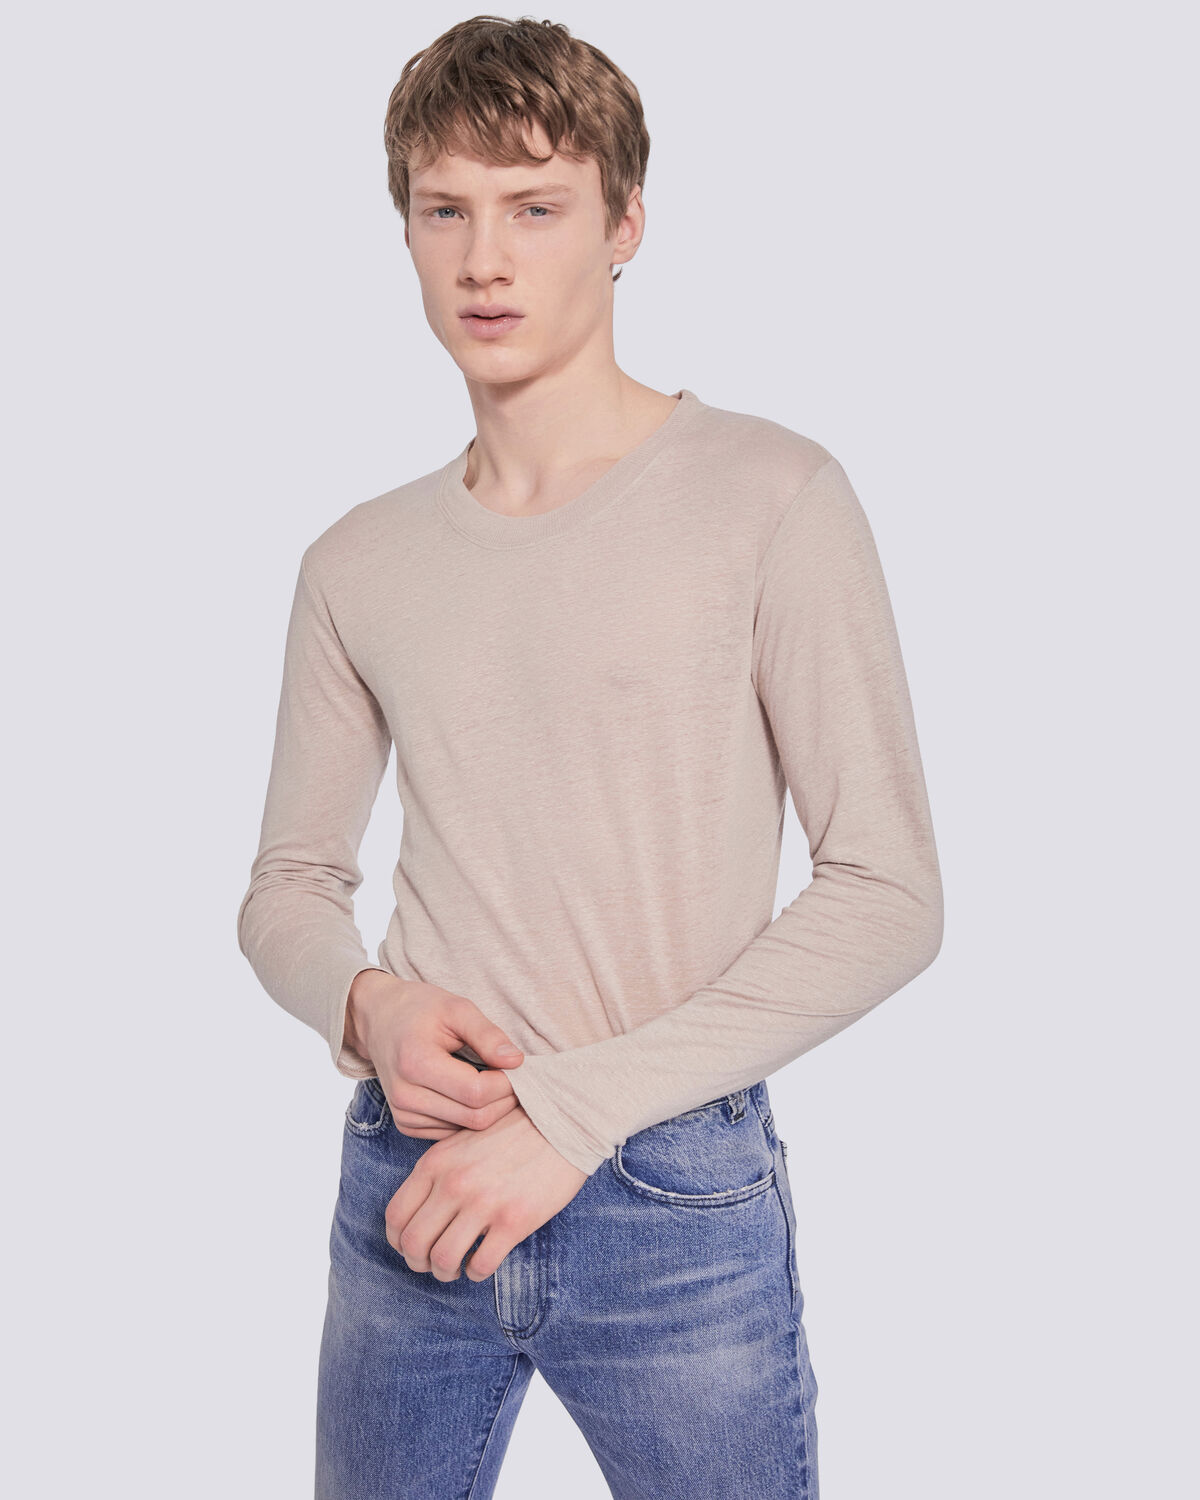 IRO - JALAPA LONG SLEEVE CREW NECK T SHIRT BEIGE/STONE GREY